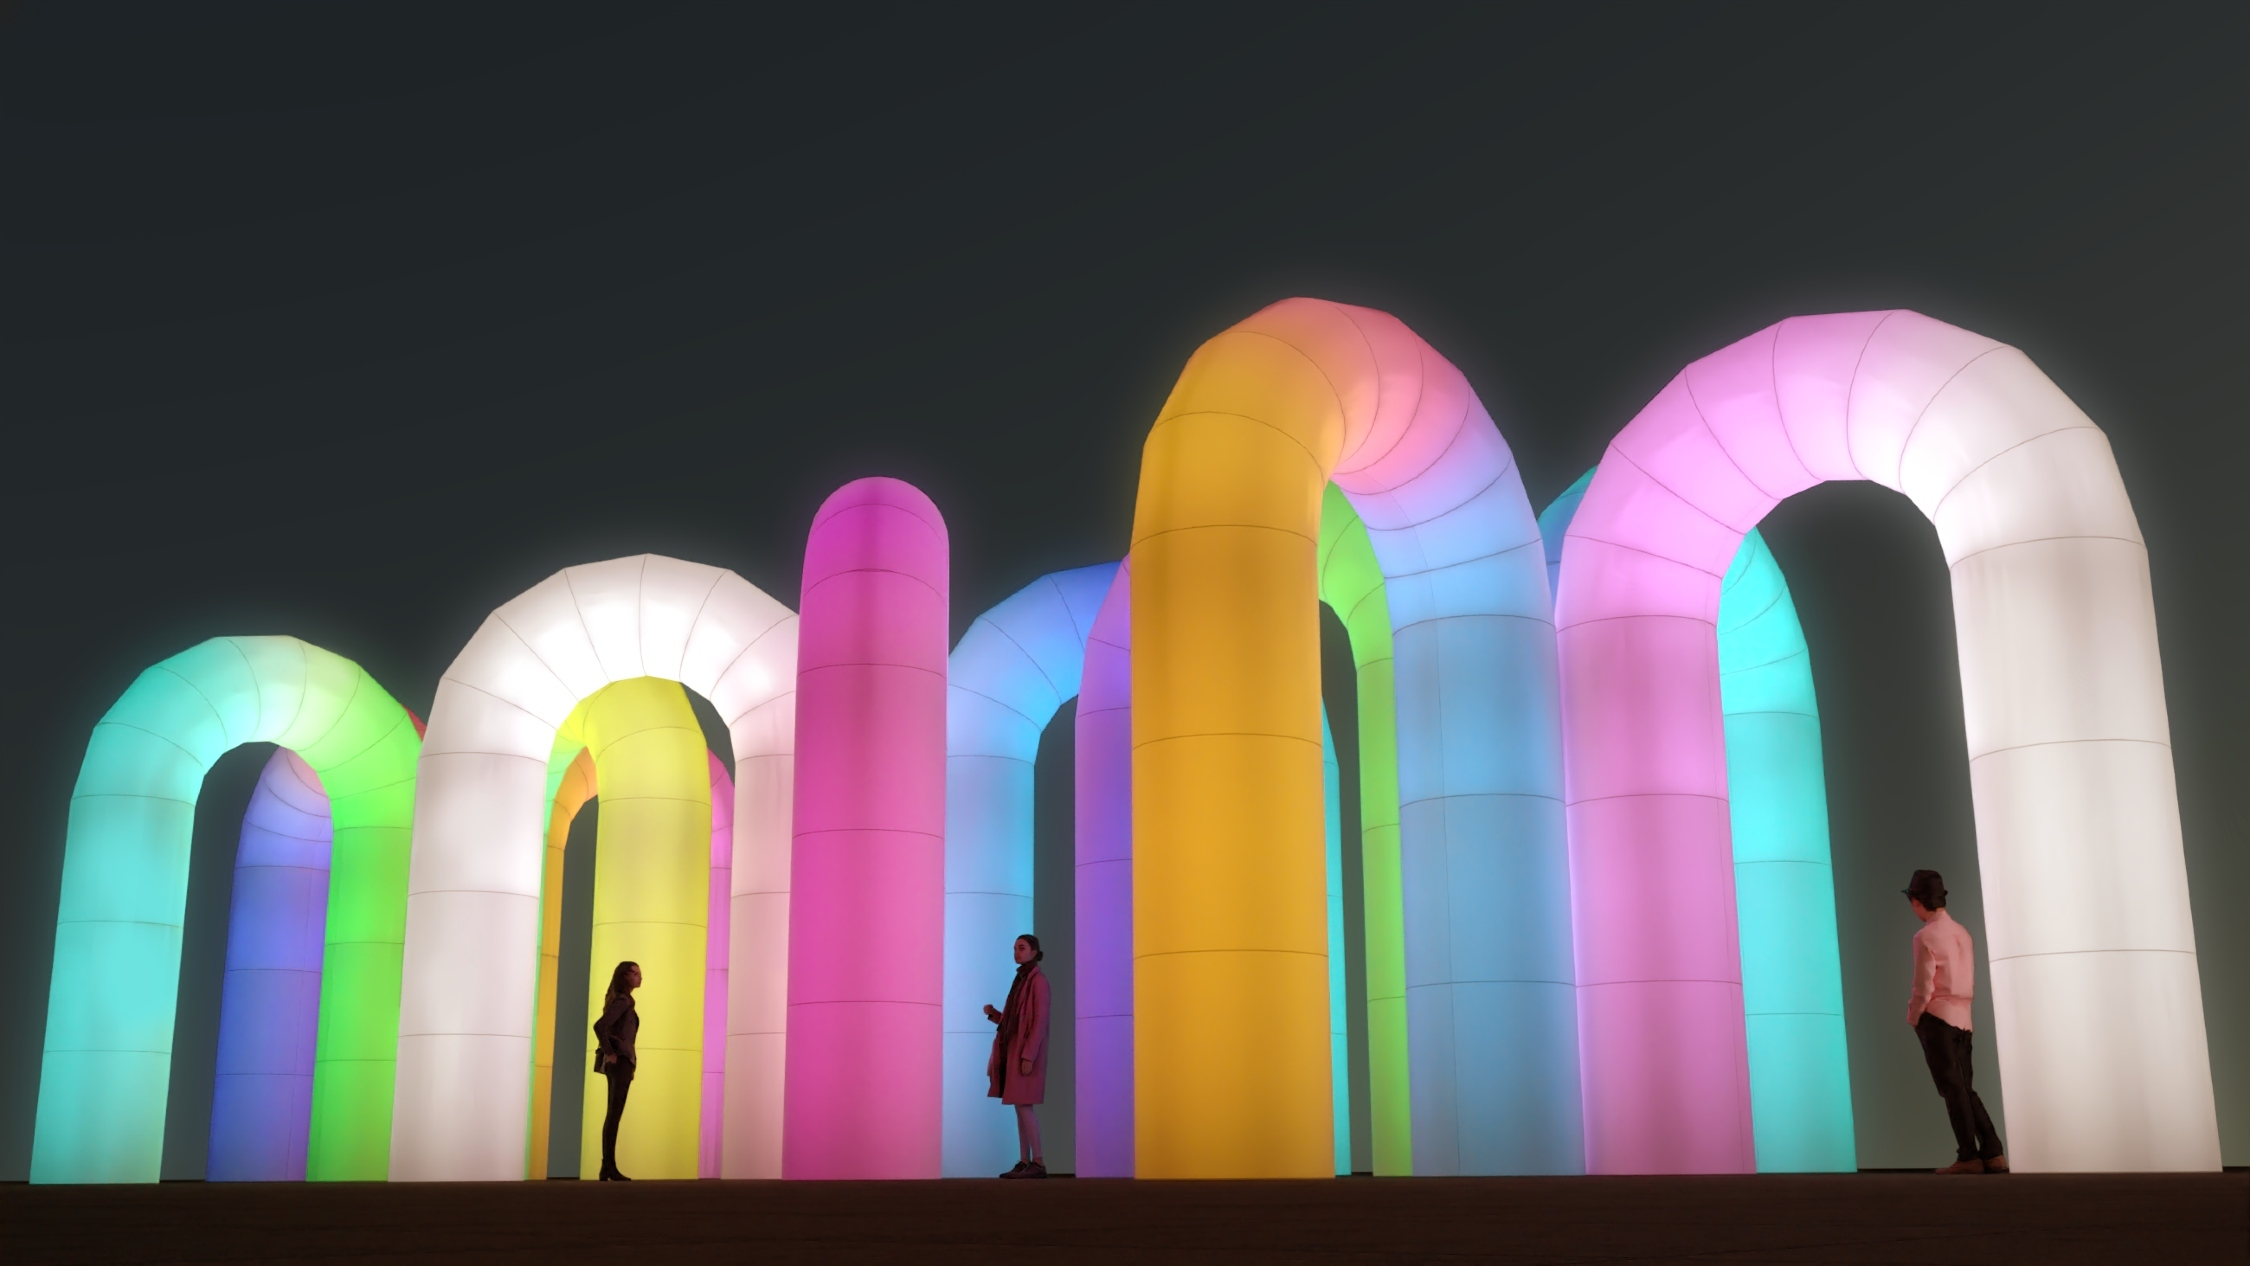 People standing underneath giant, glowing rainbow inflatable arches